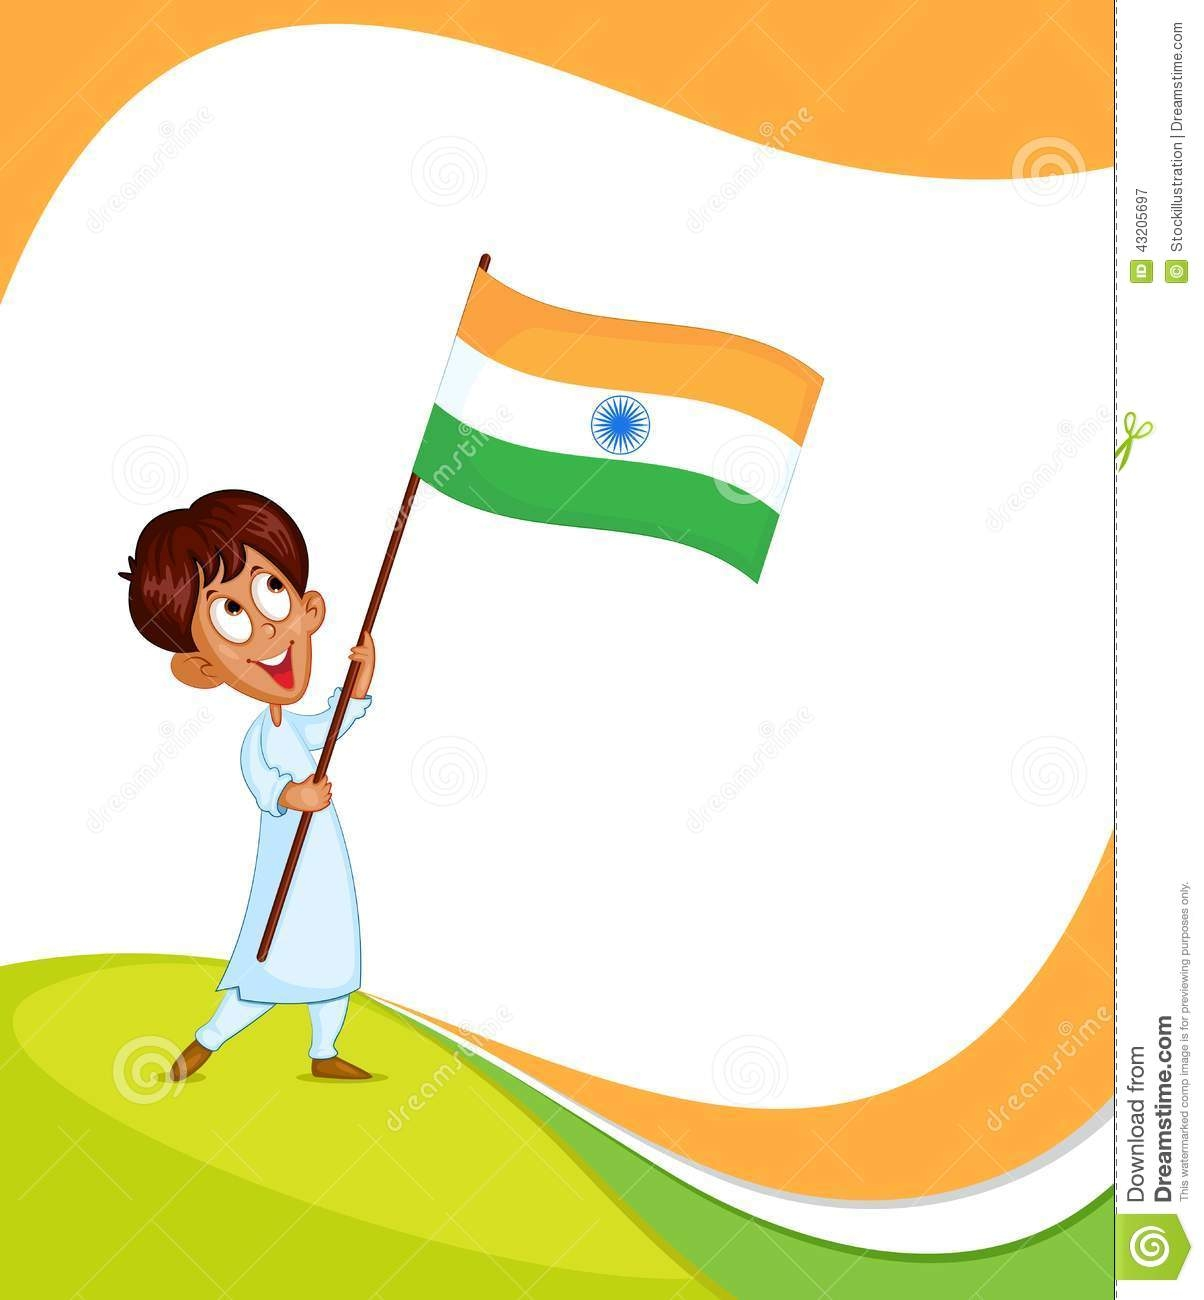 Indian boy hoisting flag of - Flag Hoisting PNG